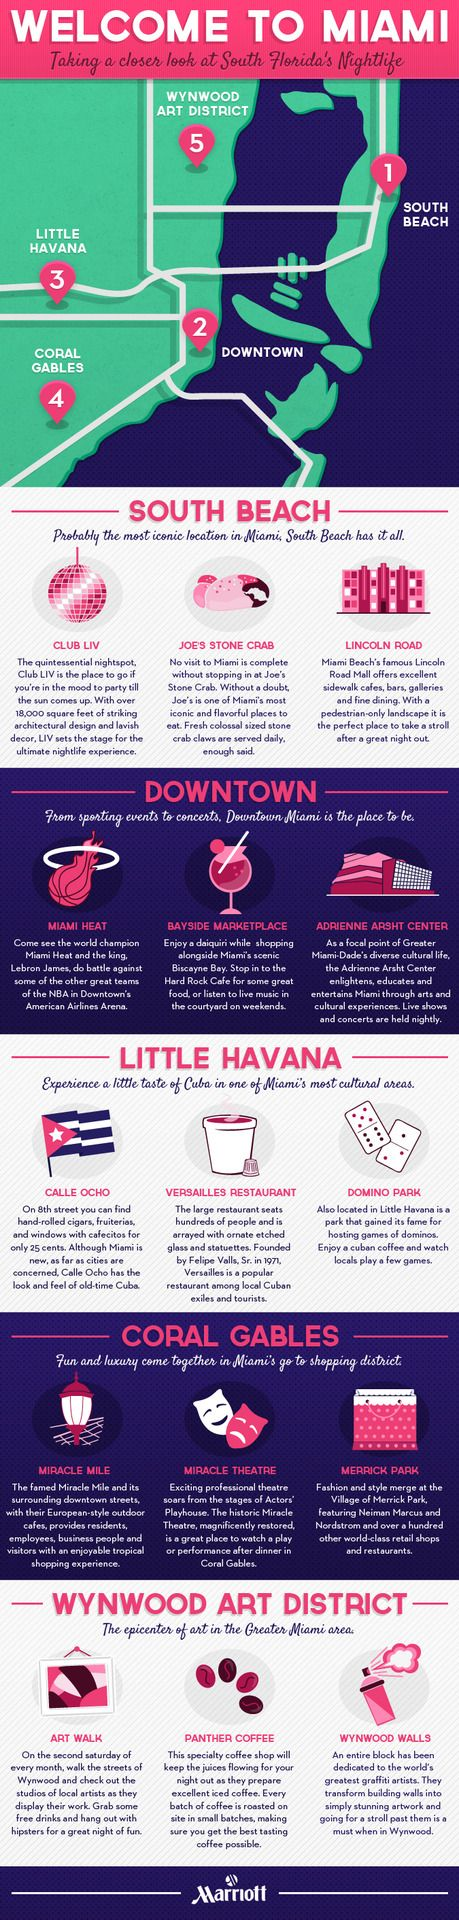 Welcome To Miami: Nightlife Hot Spots. Infographic